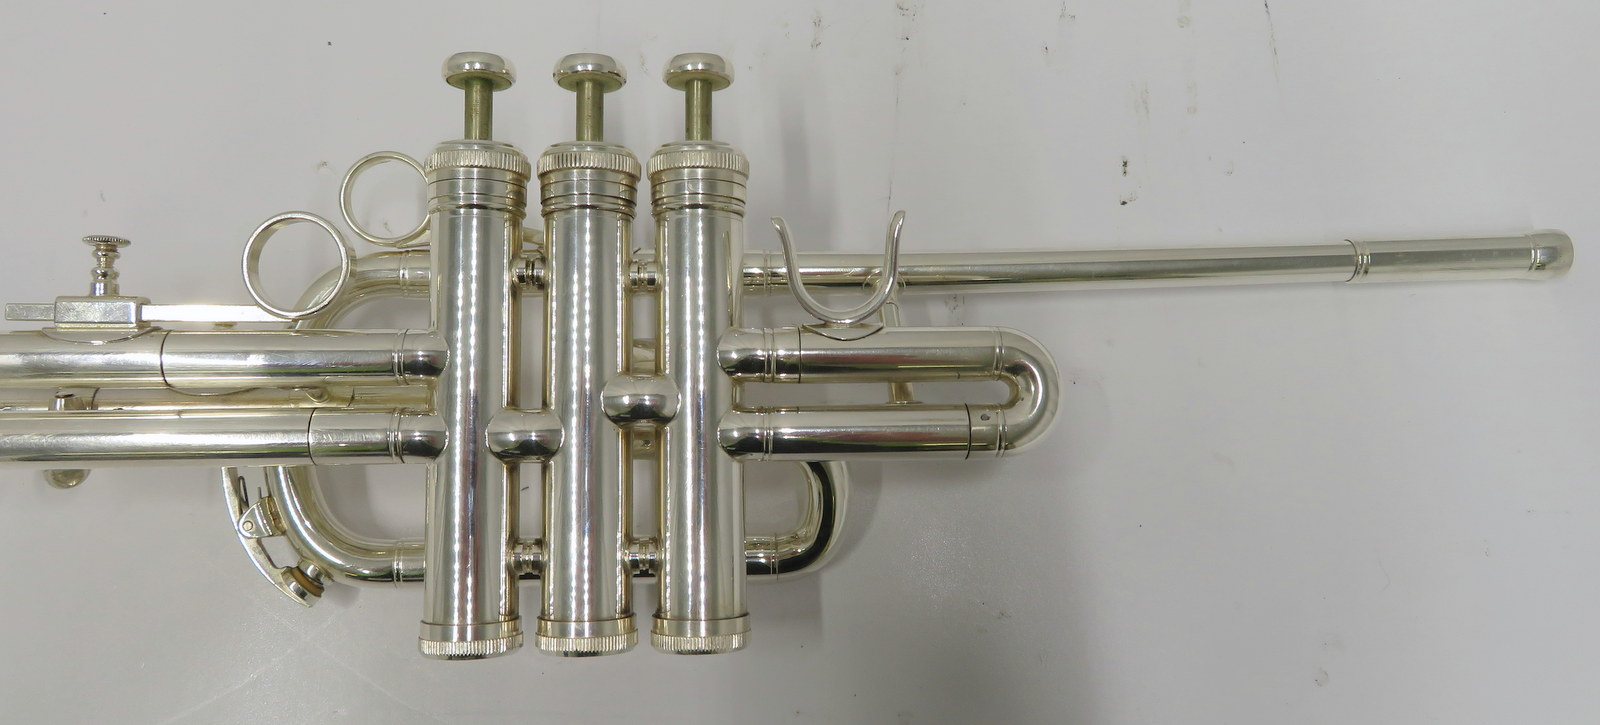 Lot 23 - Besson BE706 International fanfare trumpet with case. Serial number: 885983.